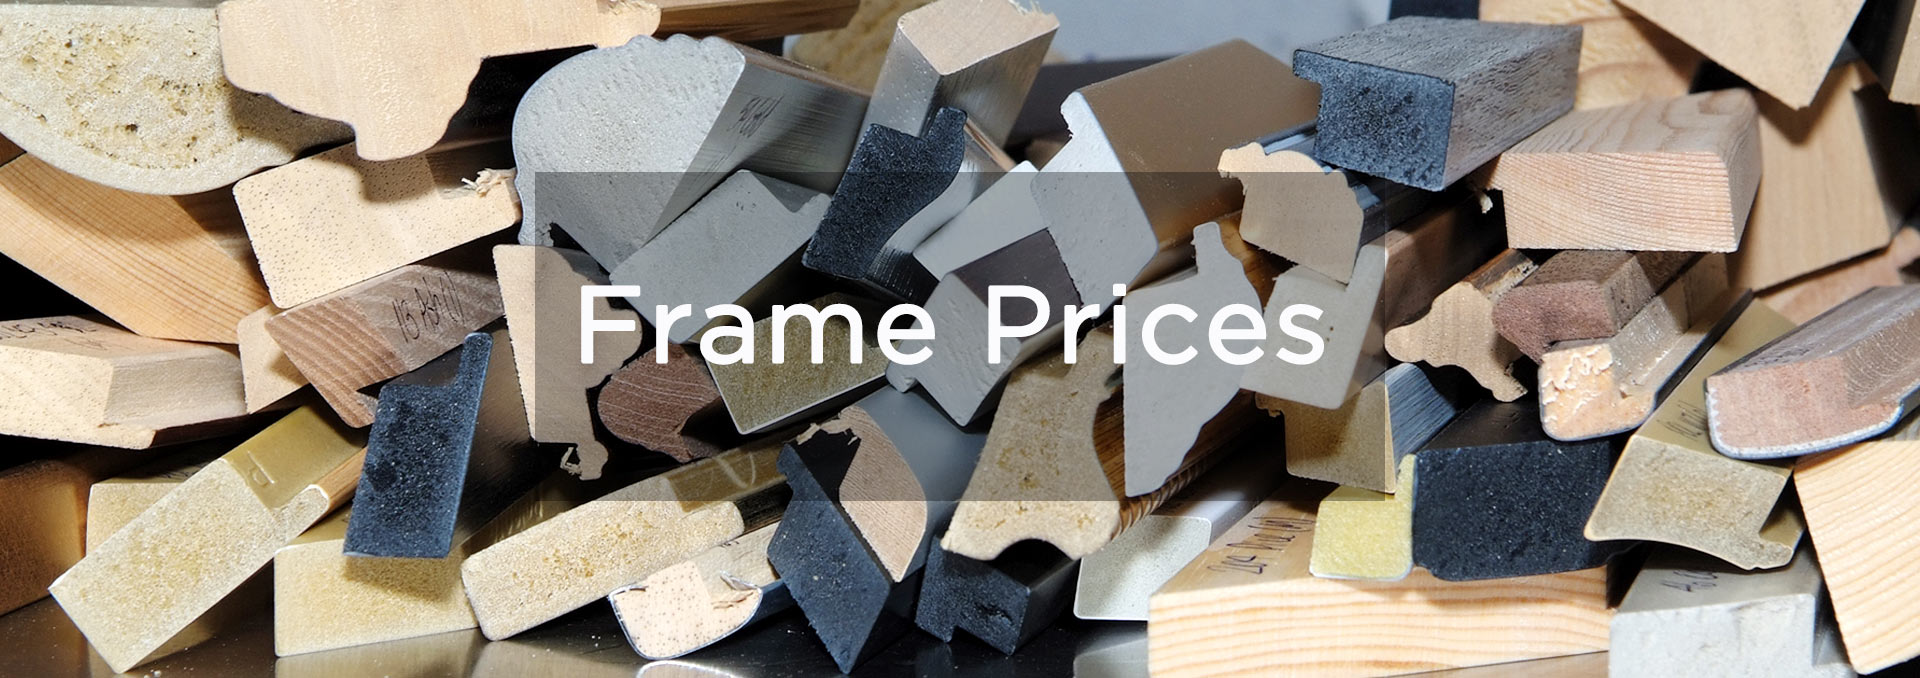 frame-prices